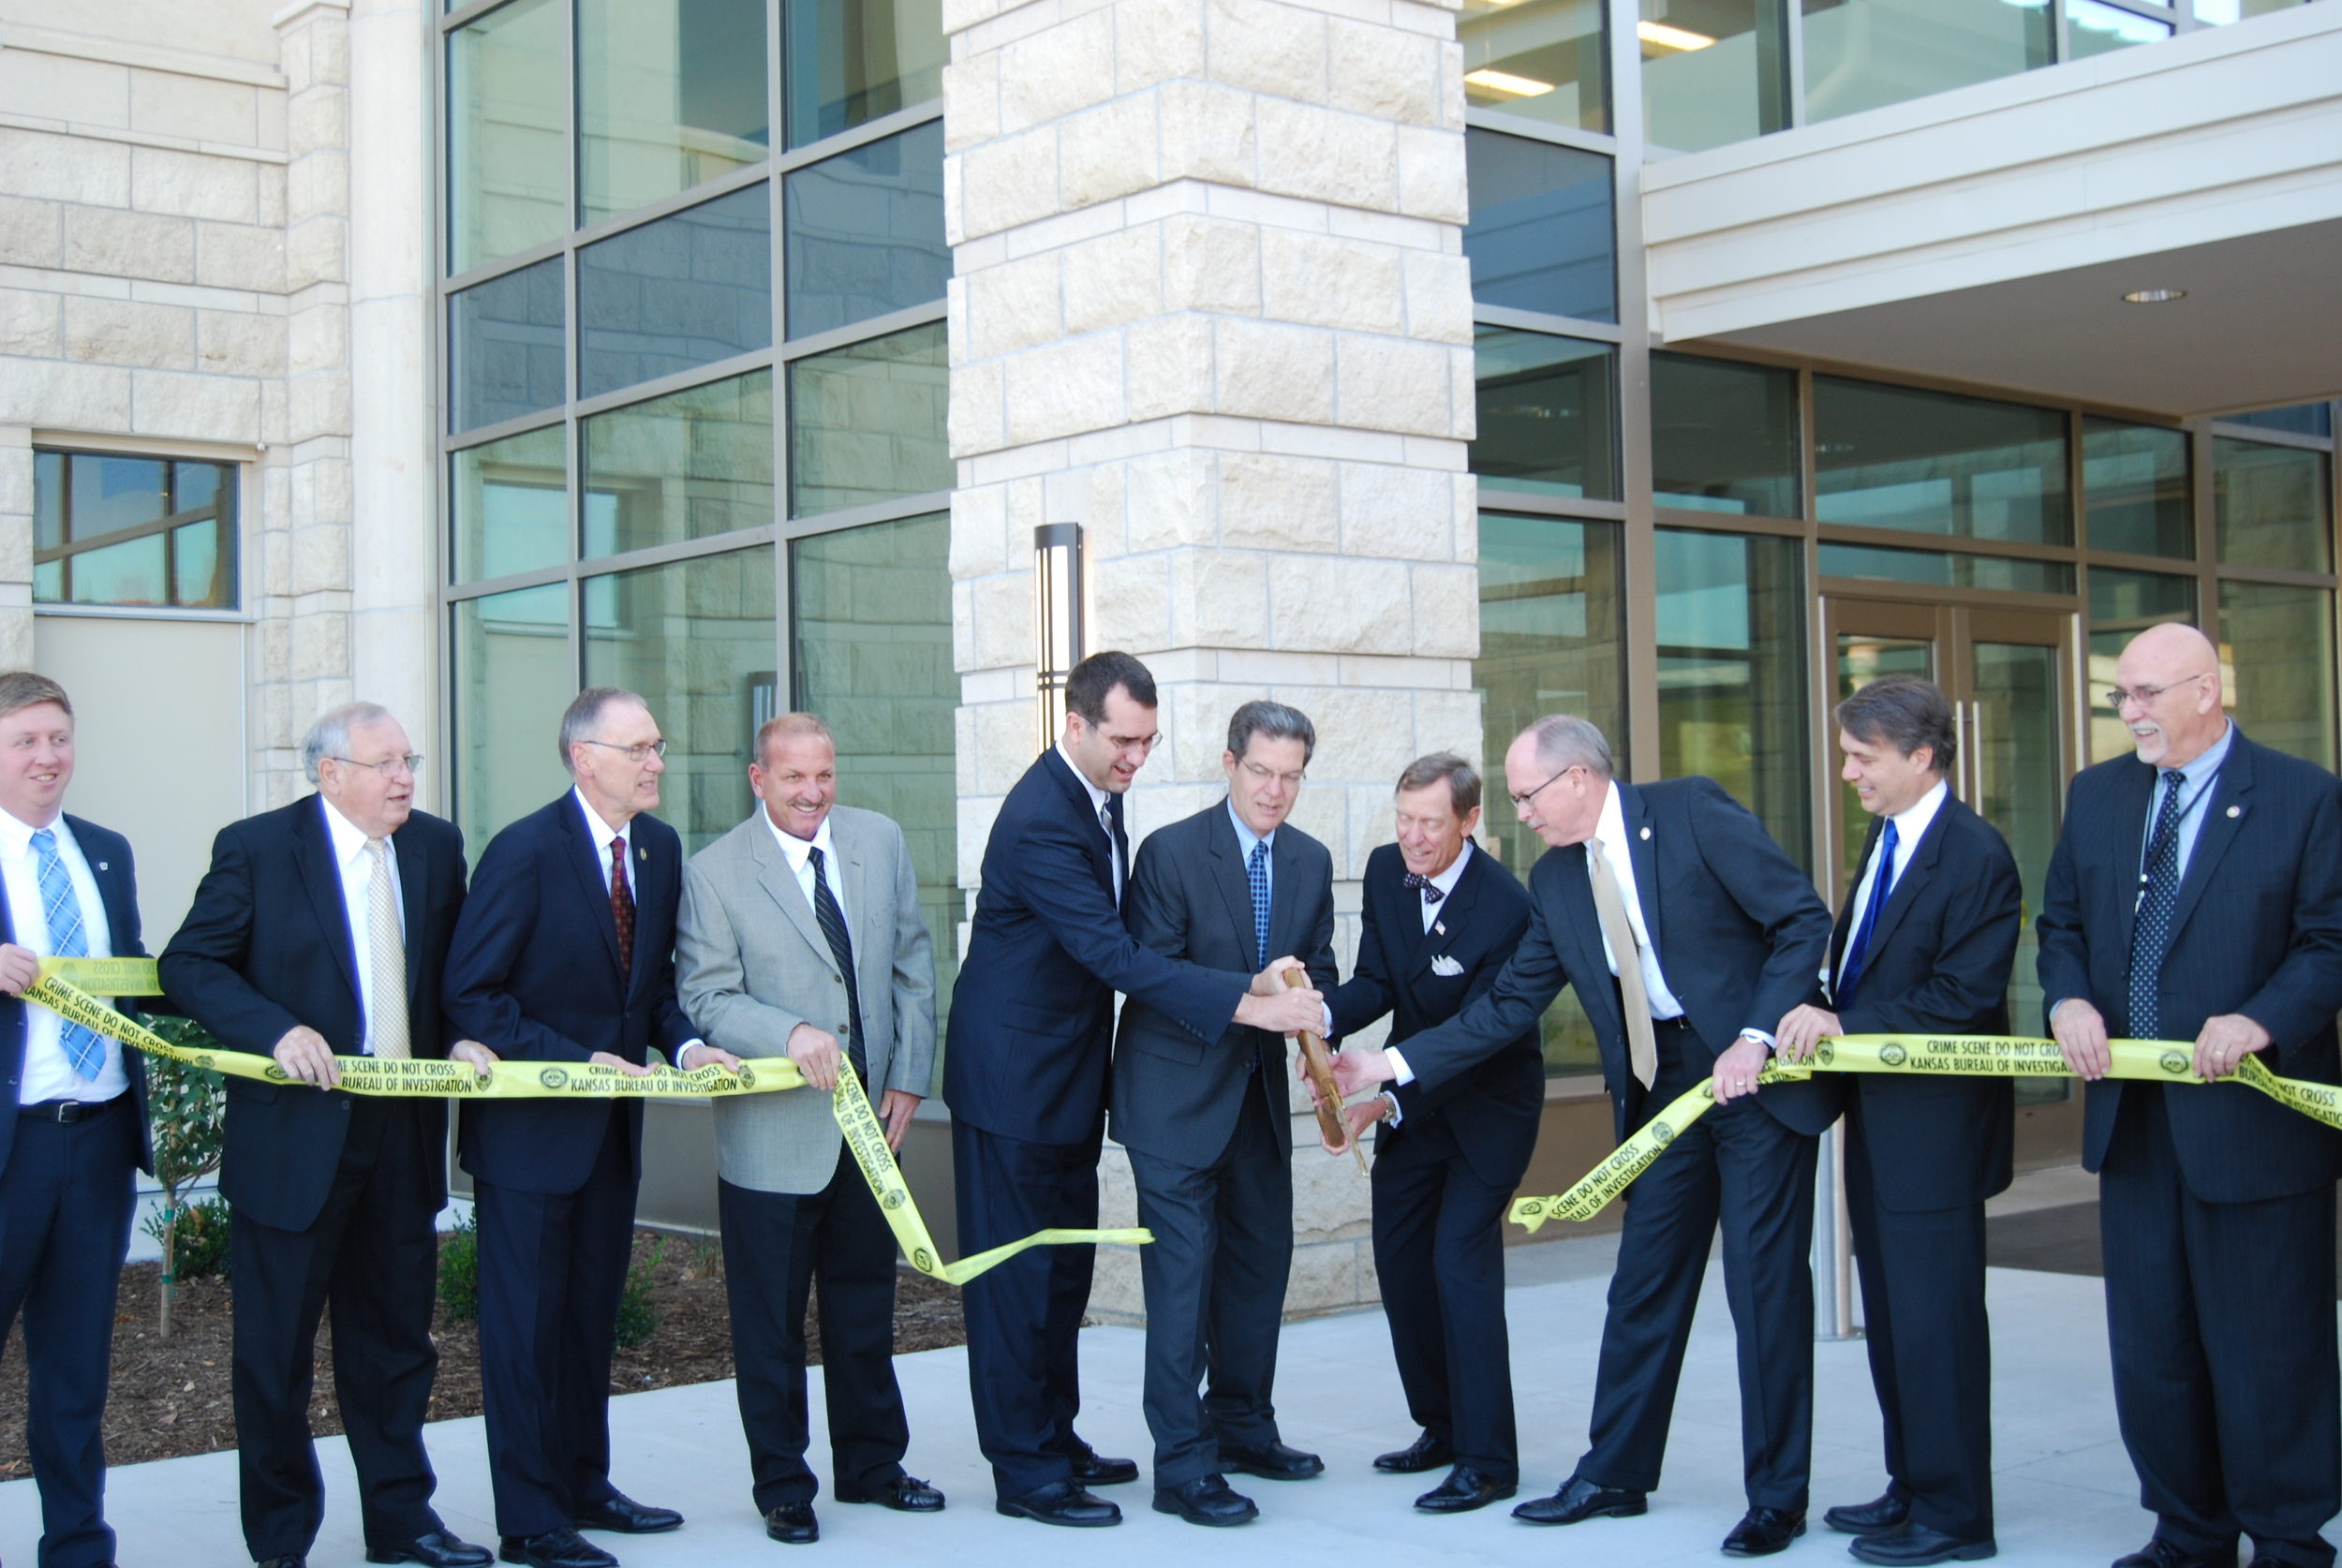 The project team and officials from the Kansas Bureau of Investigation and Washburn University perform a ribbon-cutting ceremony marking the debut of the new $55 million forensics lab.